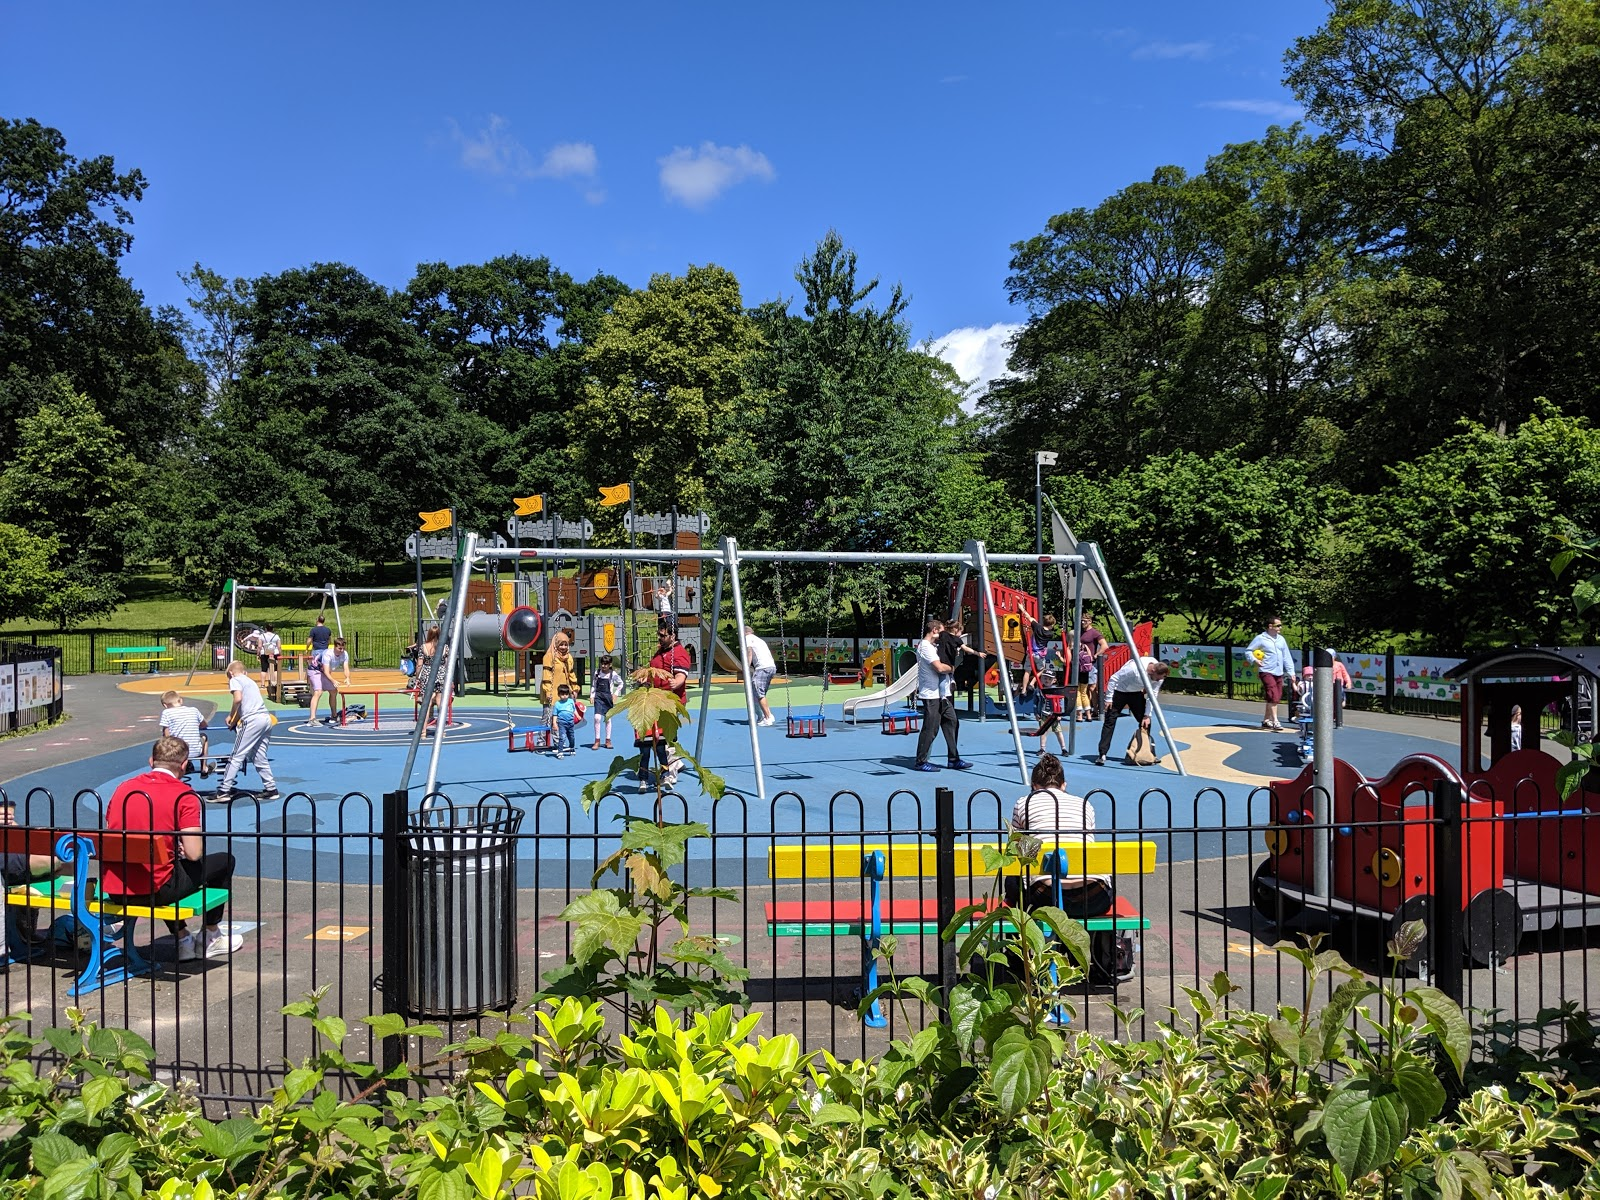 A Short Break in Leeds with Holidays by National Express  - Roundhay Park Playground